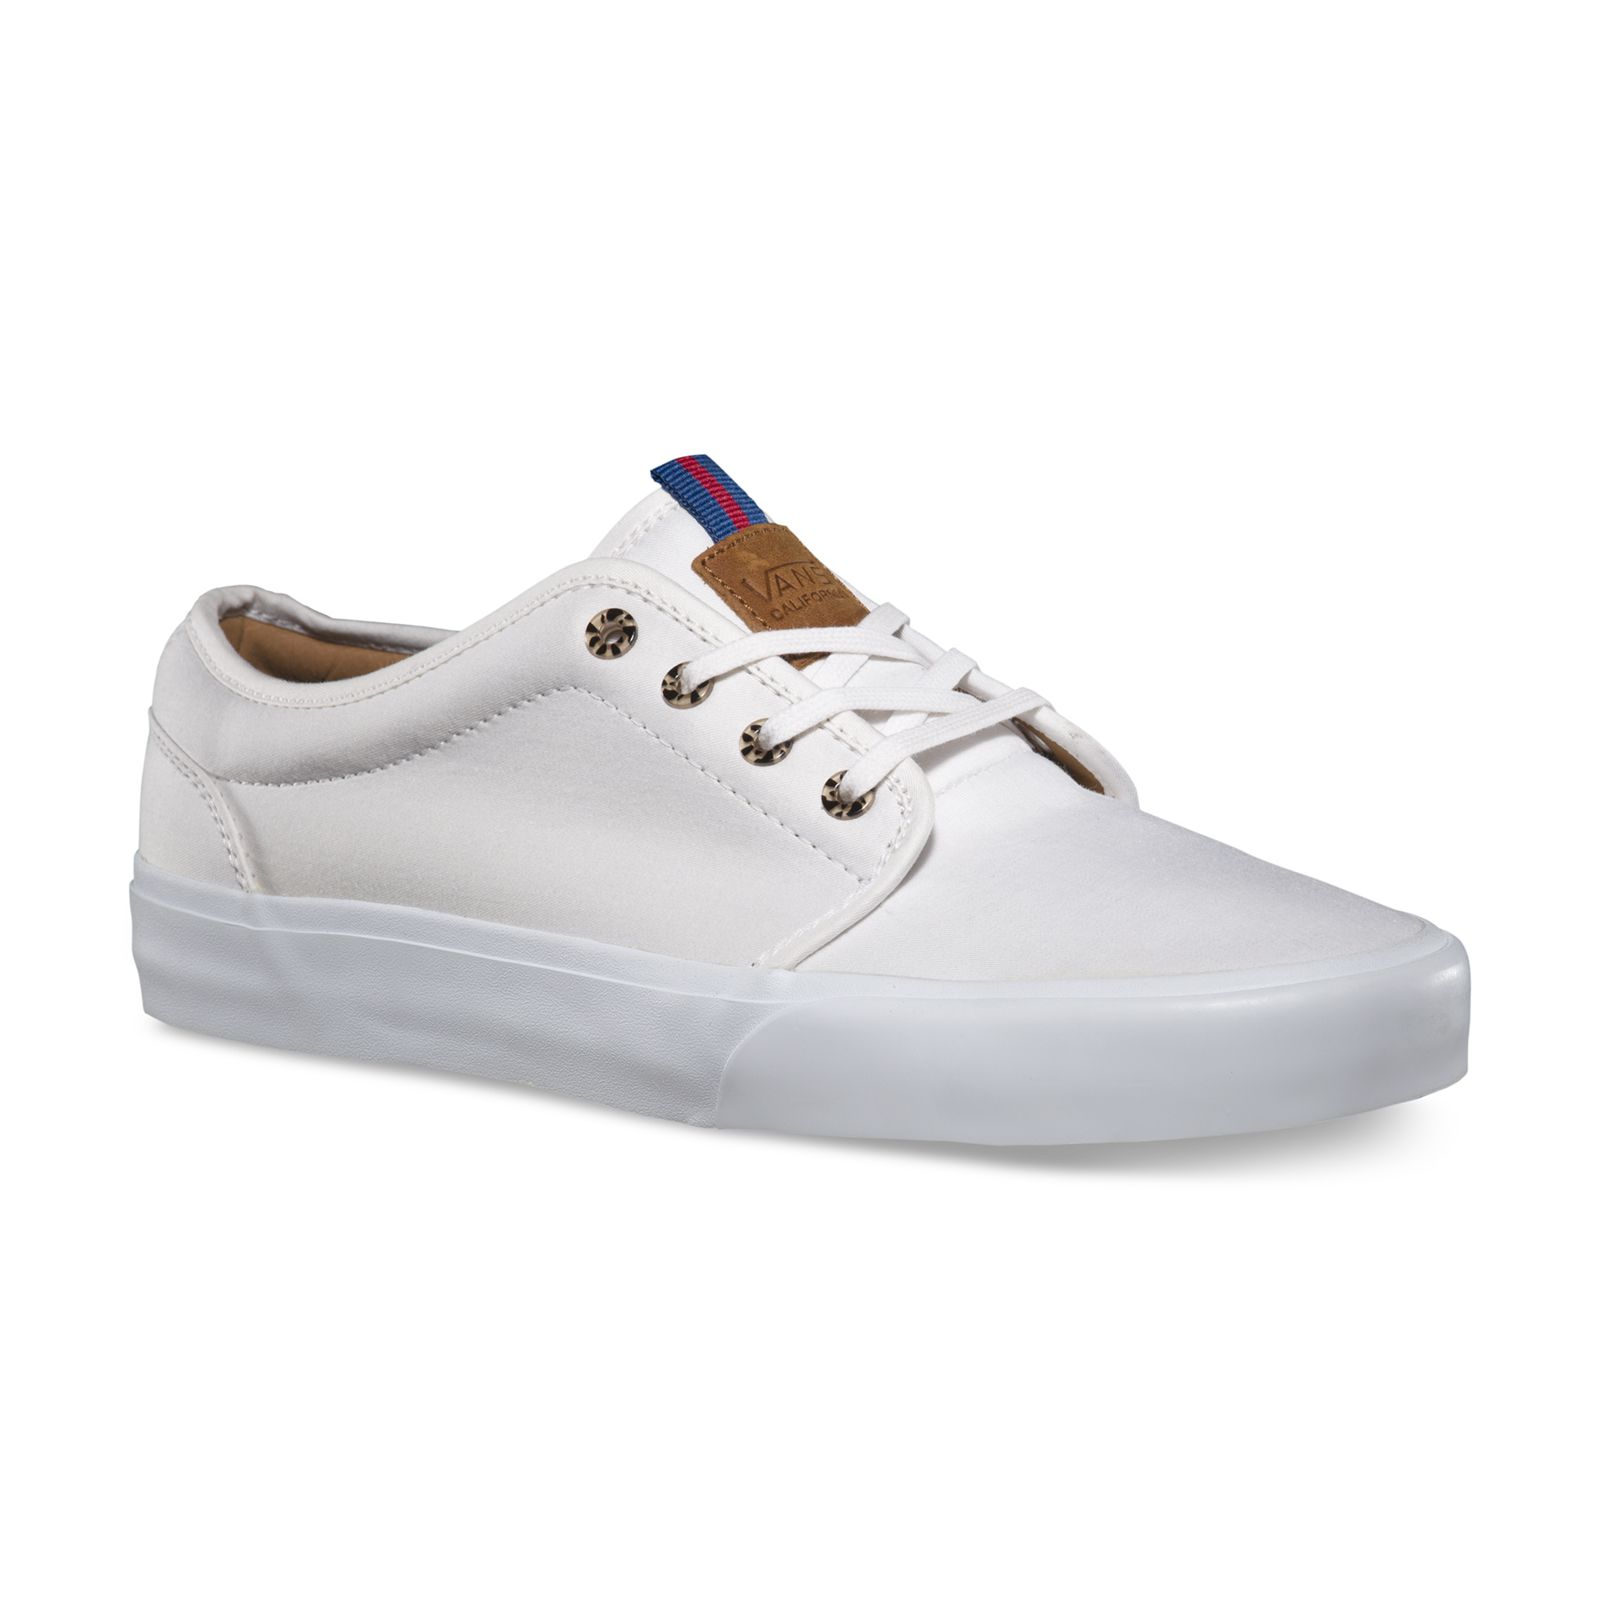 fd992d291b Find twill shoes at Vans. Shop for twill shoes